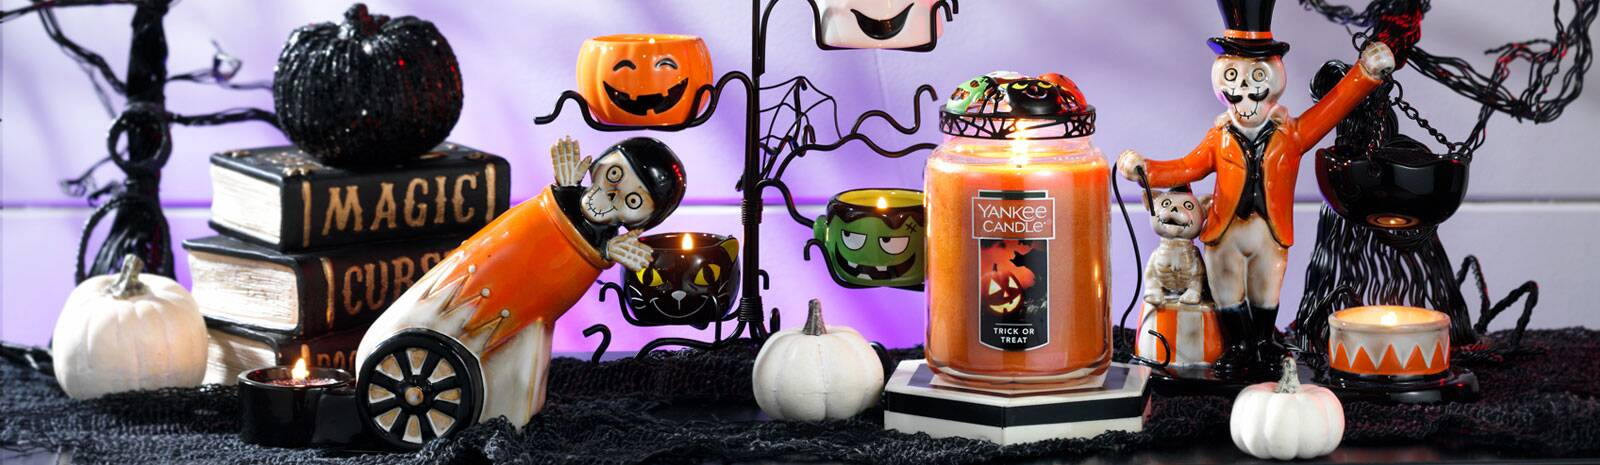 Yankee Candle Halloween Preview Party 2020 Yankee Candle Halloween Party   The Shoppes at EastChase